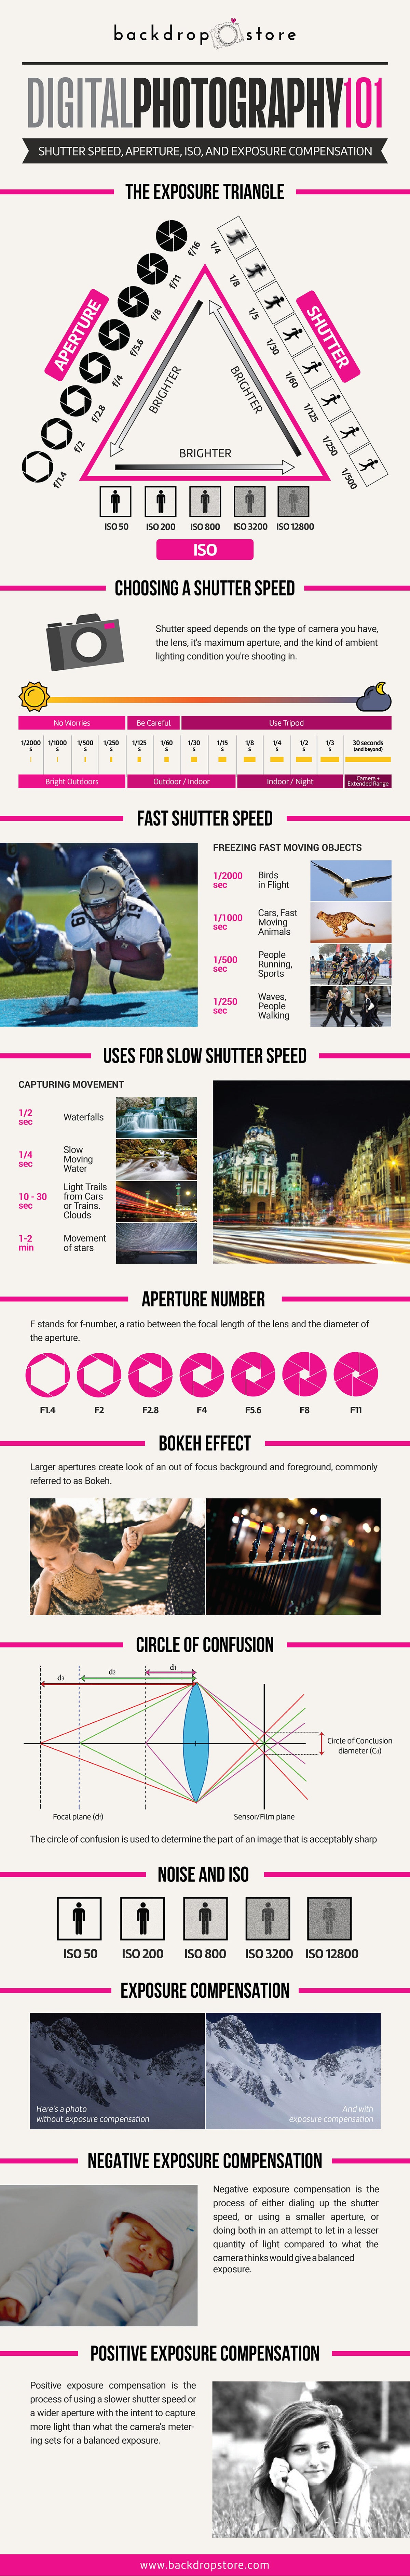 Digital Photography 101 Infographic